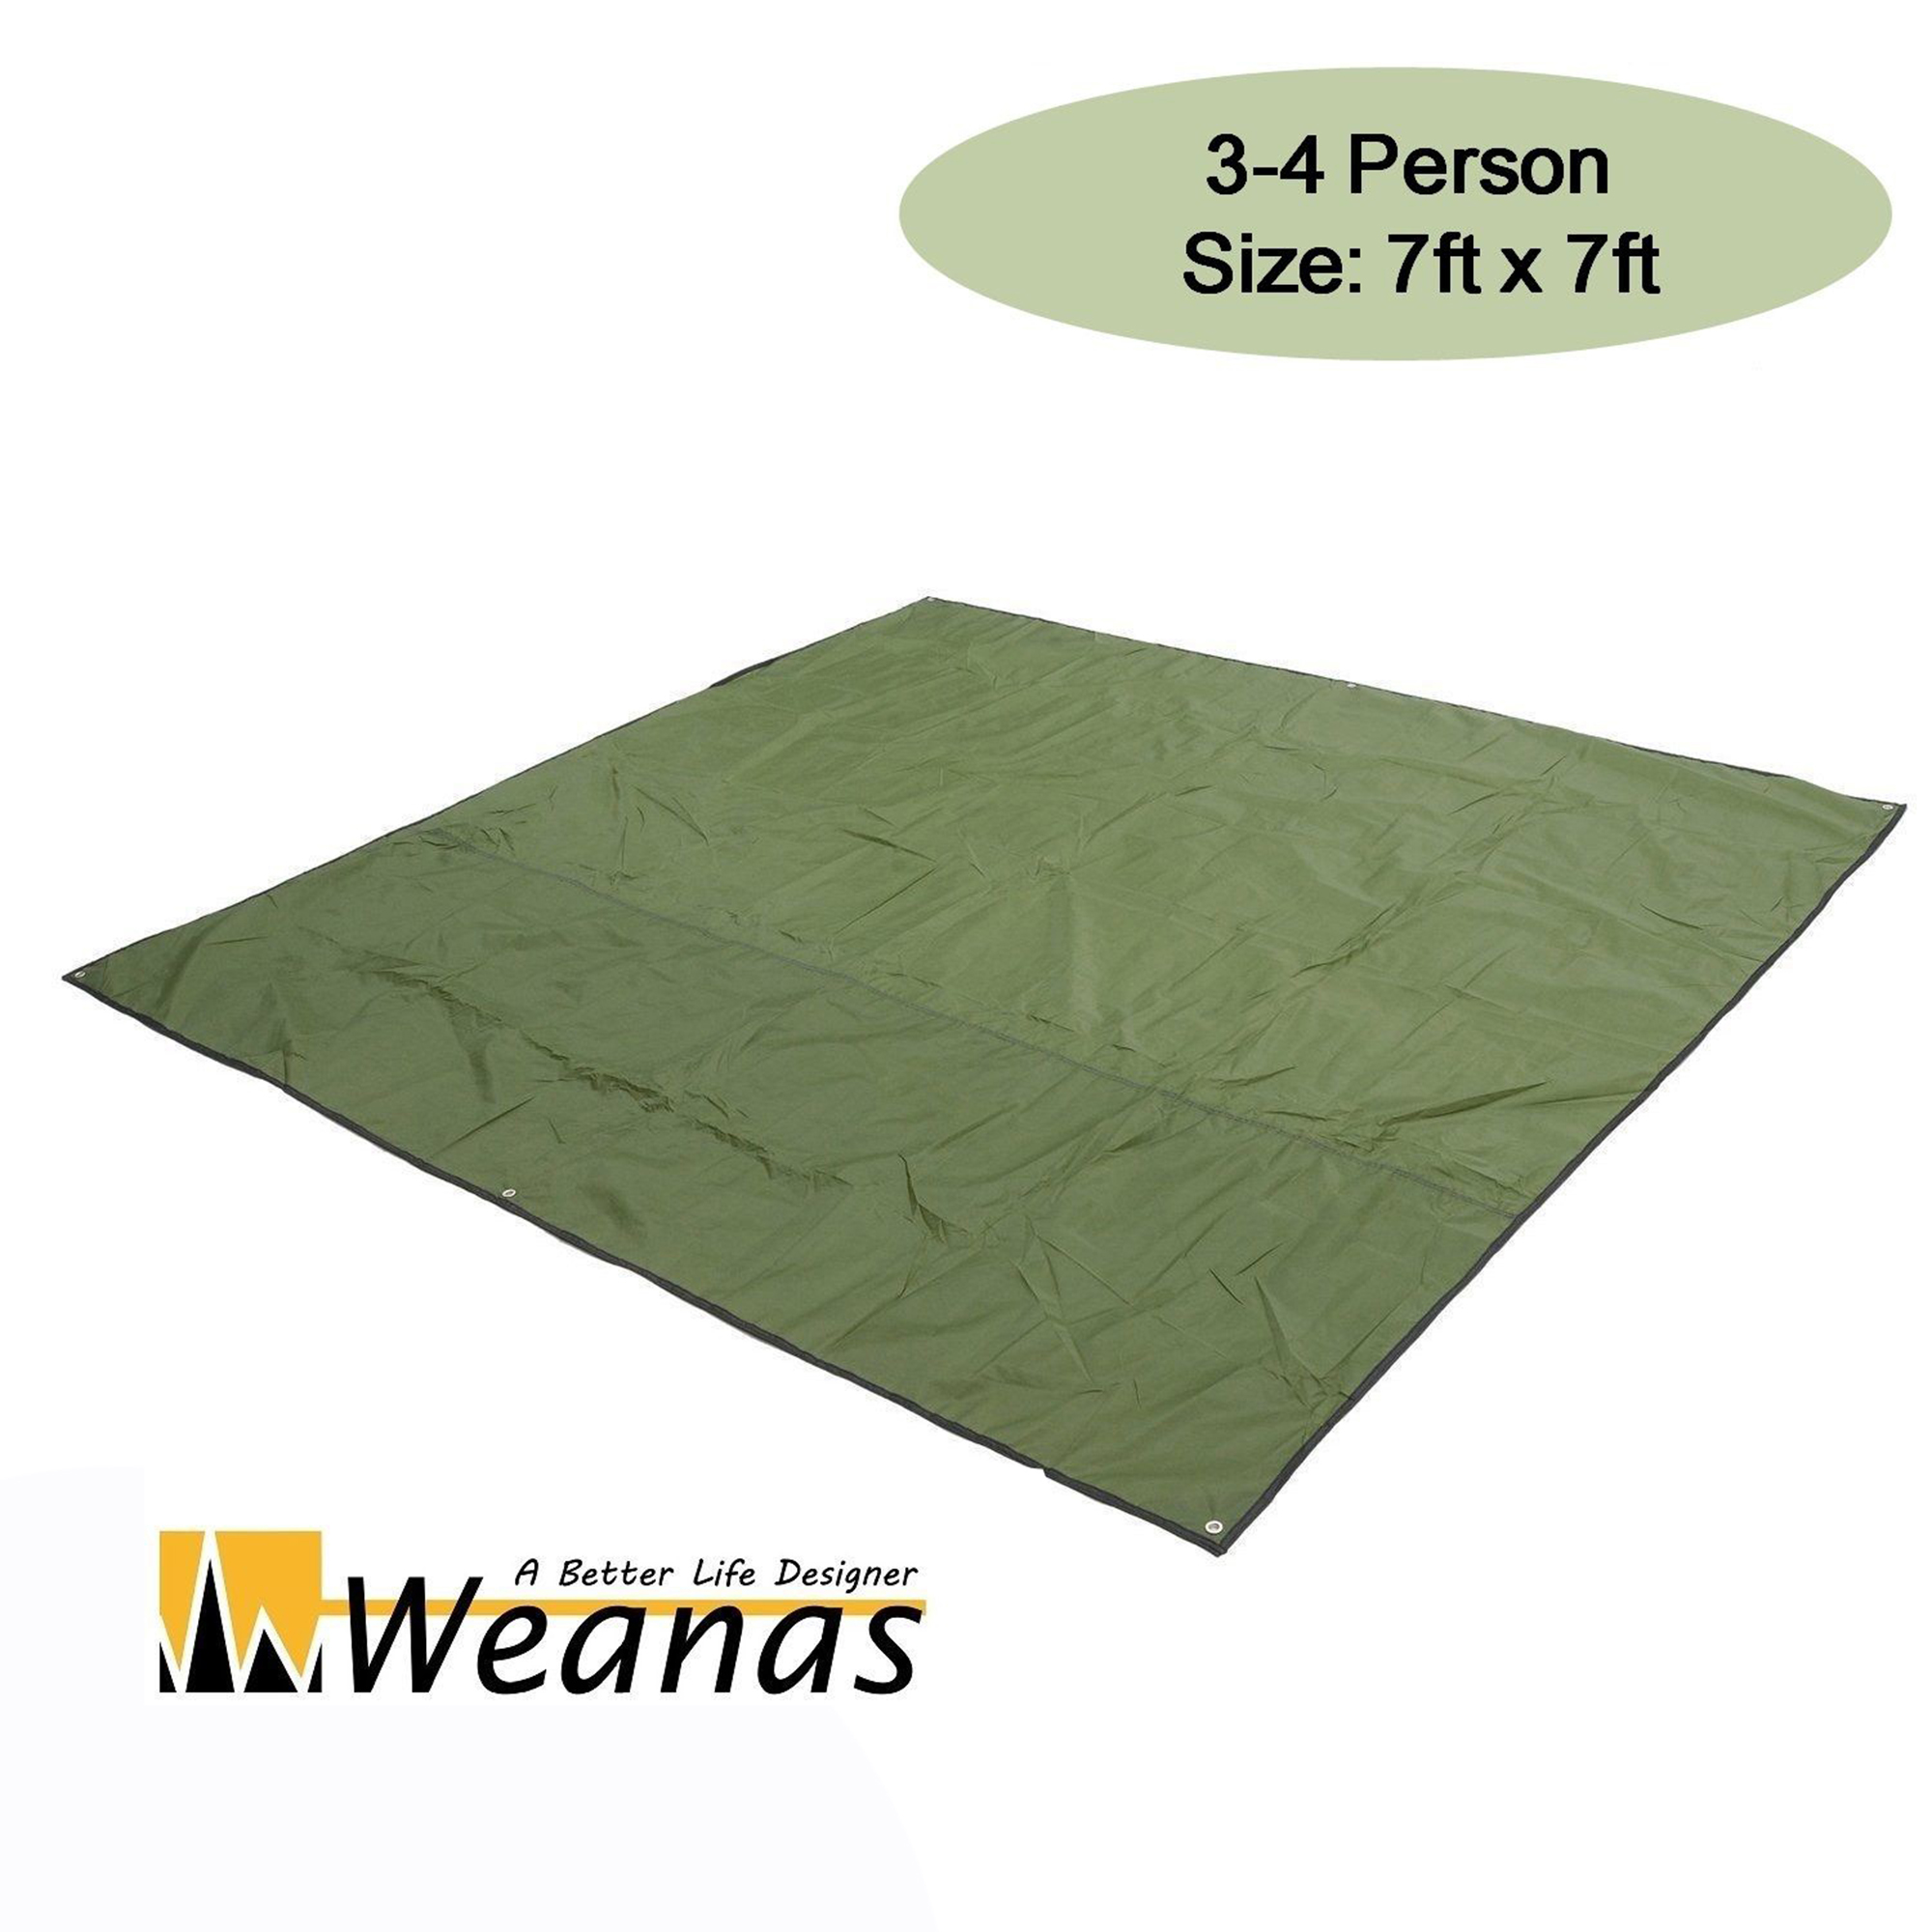 WEANAS 3-4 Person Outdoor Thickened Oxford Fabric C&ing Shelter Tent Tarp Canopy Cover Tent  sc 1 st  Walmart & WEANAS 3-4 Person Outdoor Thickened Oxford Fabric Camping Shelter ...